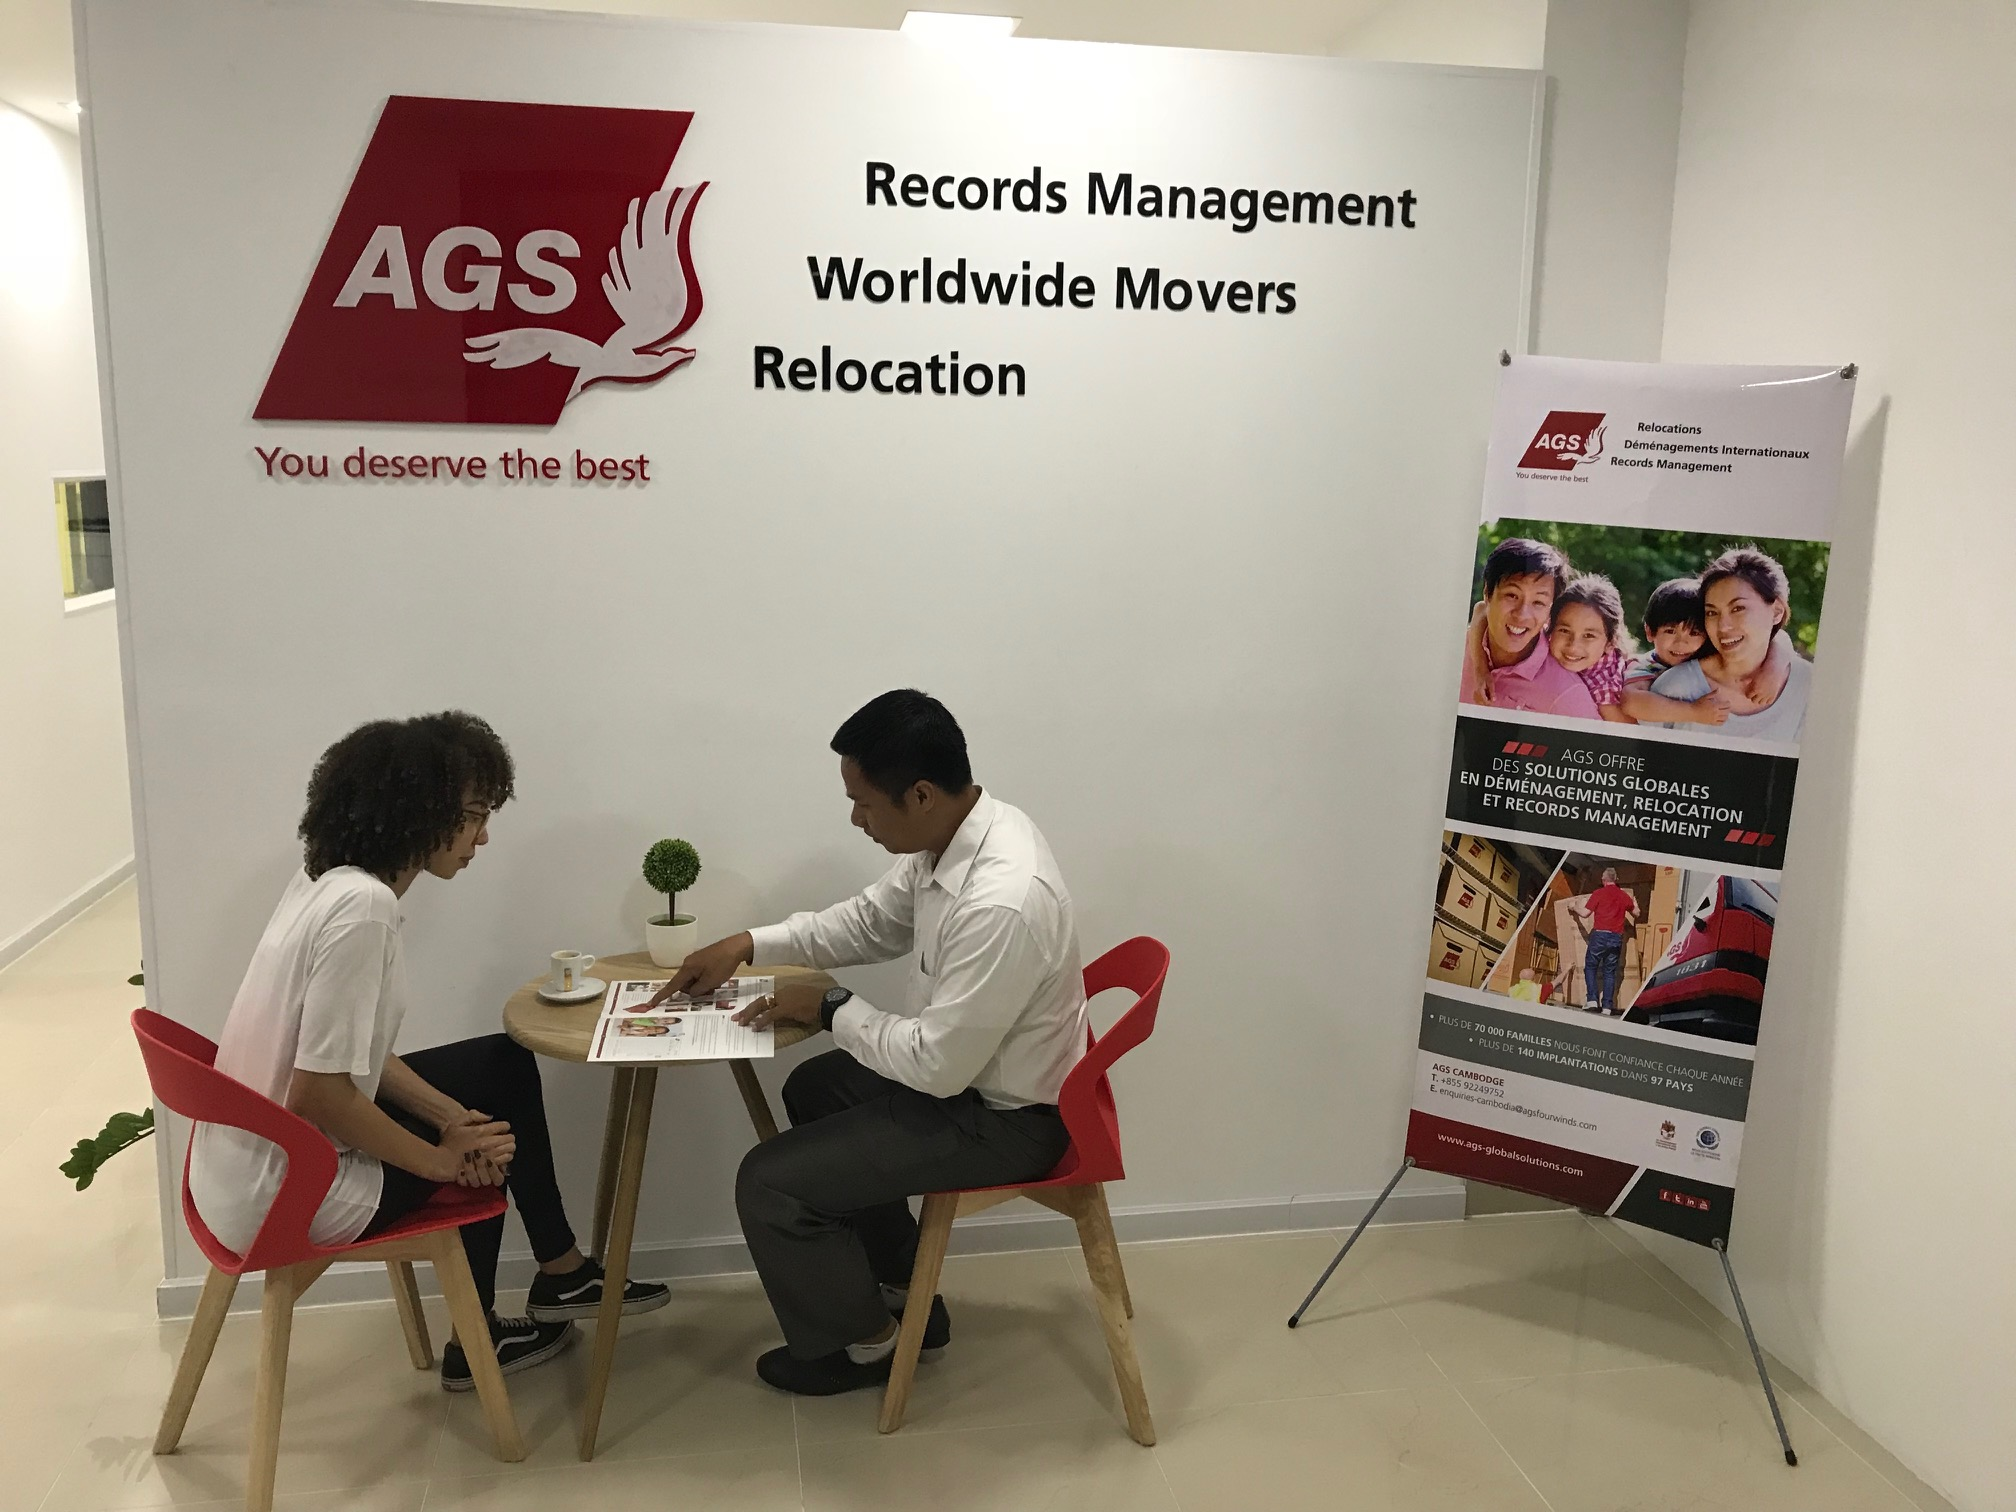 AGS Records Management exhibition booth.